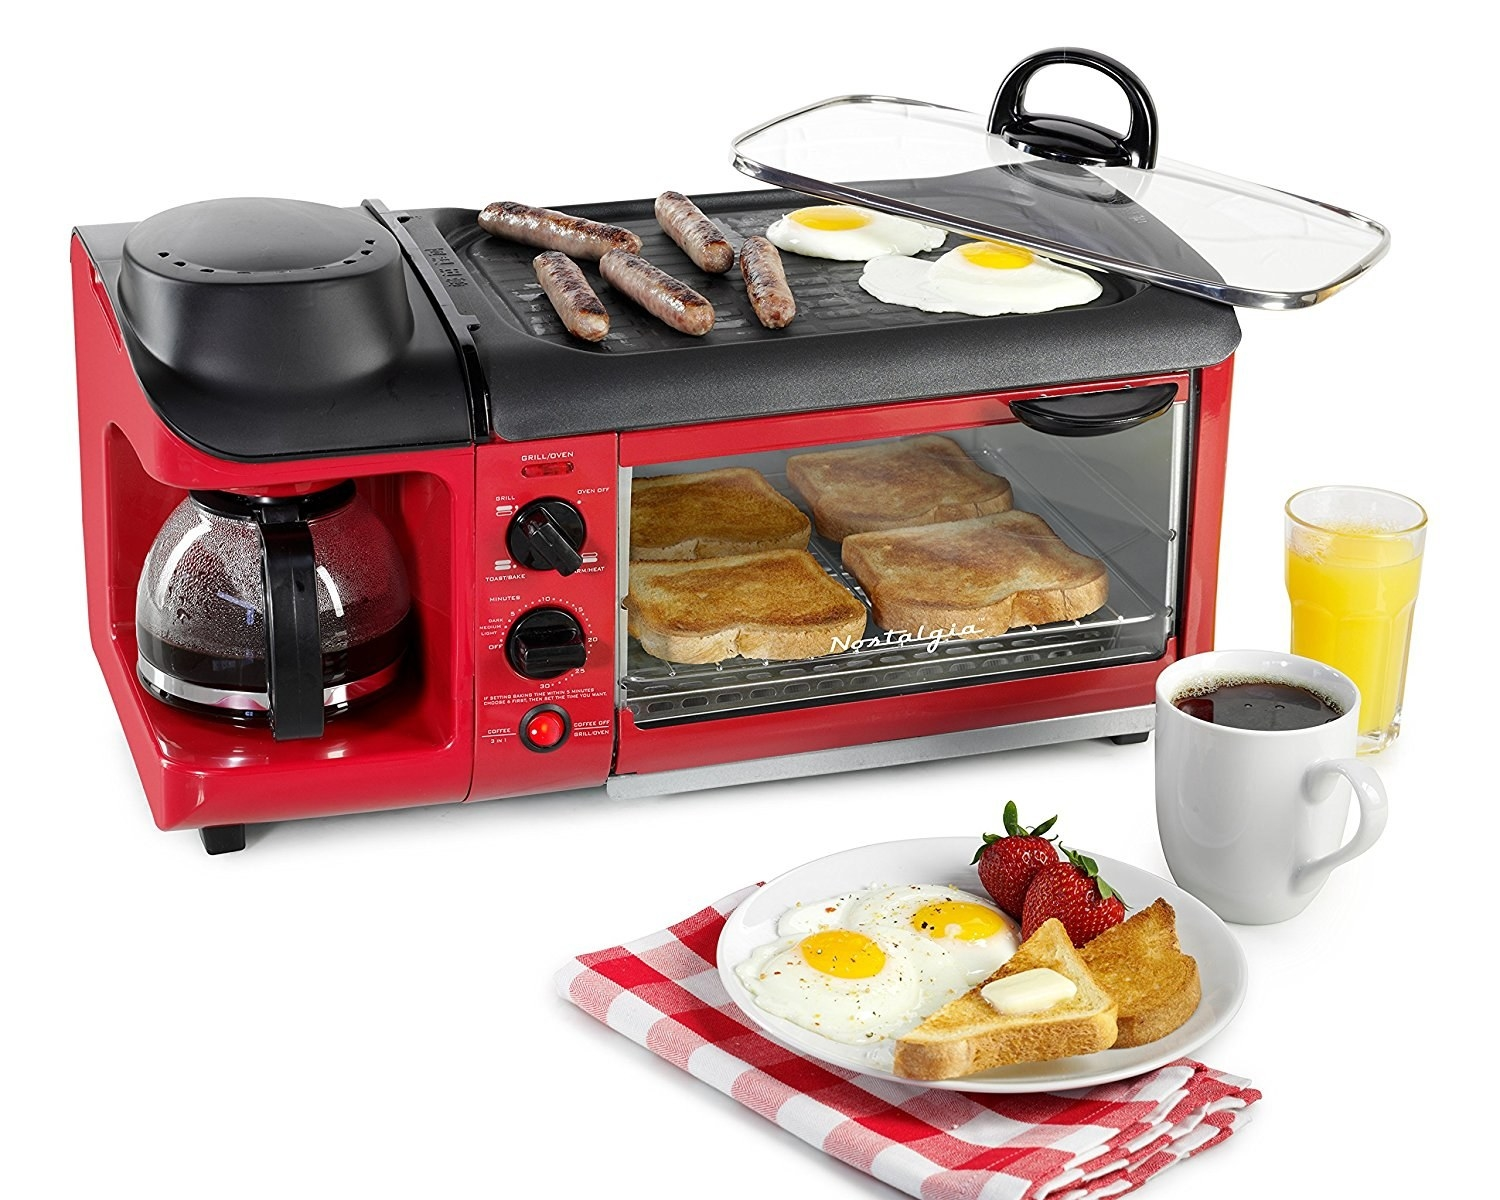 the breakfast station in red